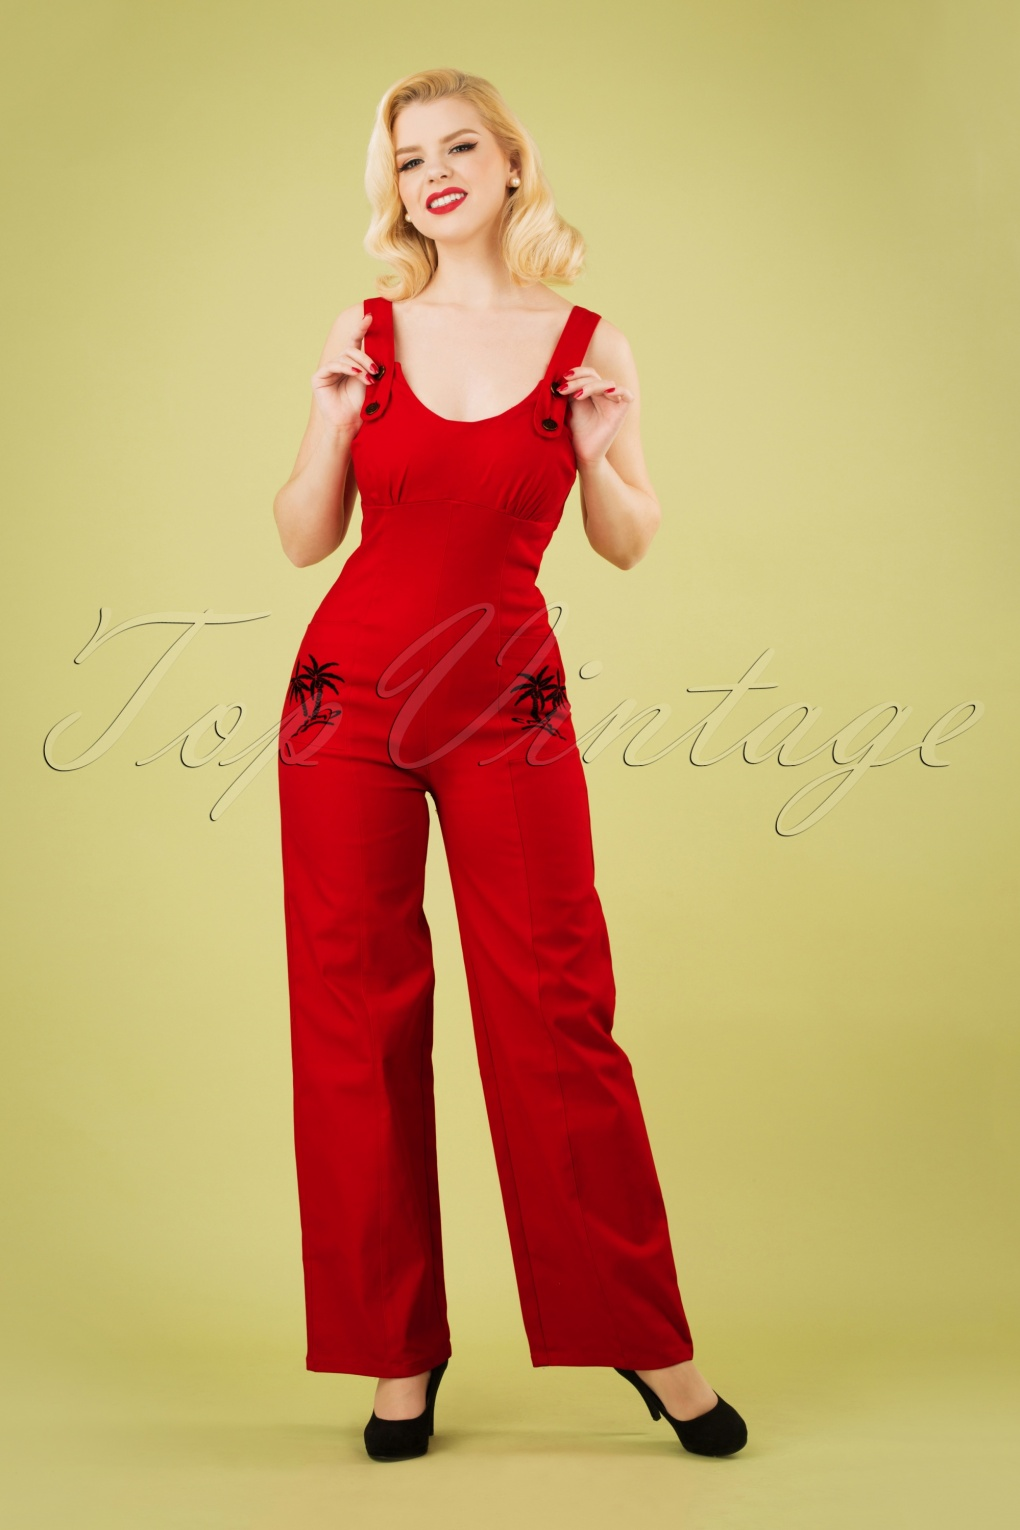 Vintage Overalls 1910s -1950s History & Shop Overalls 50s Jenna Palm Tree Dungarees in Red �69.92 AT vintagedancer.com